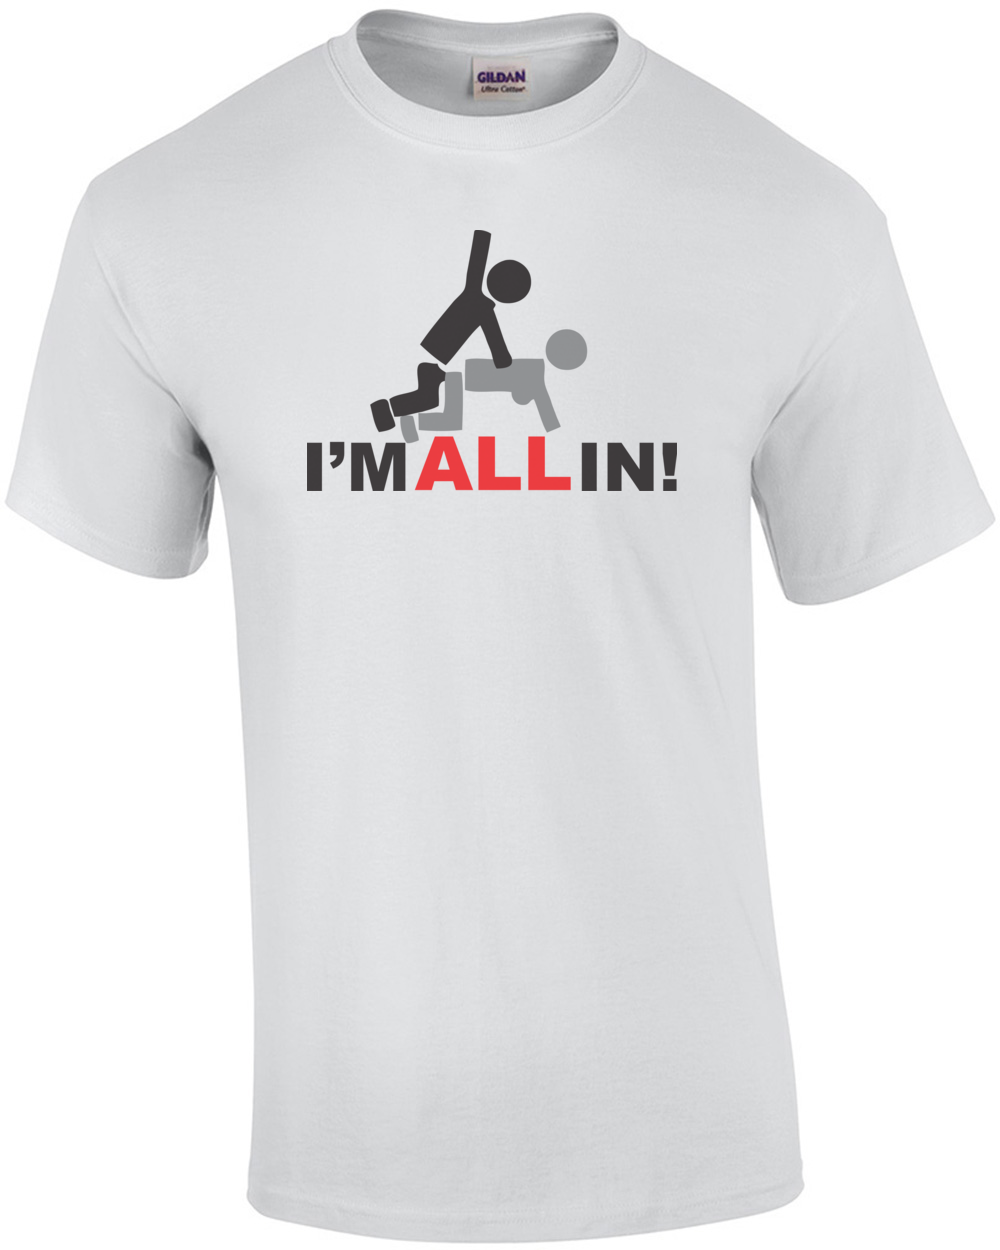 I'm All In Funny T-shirt